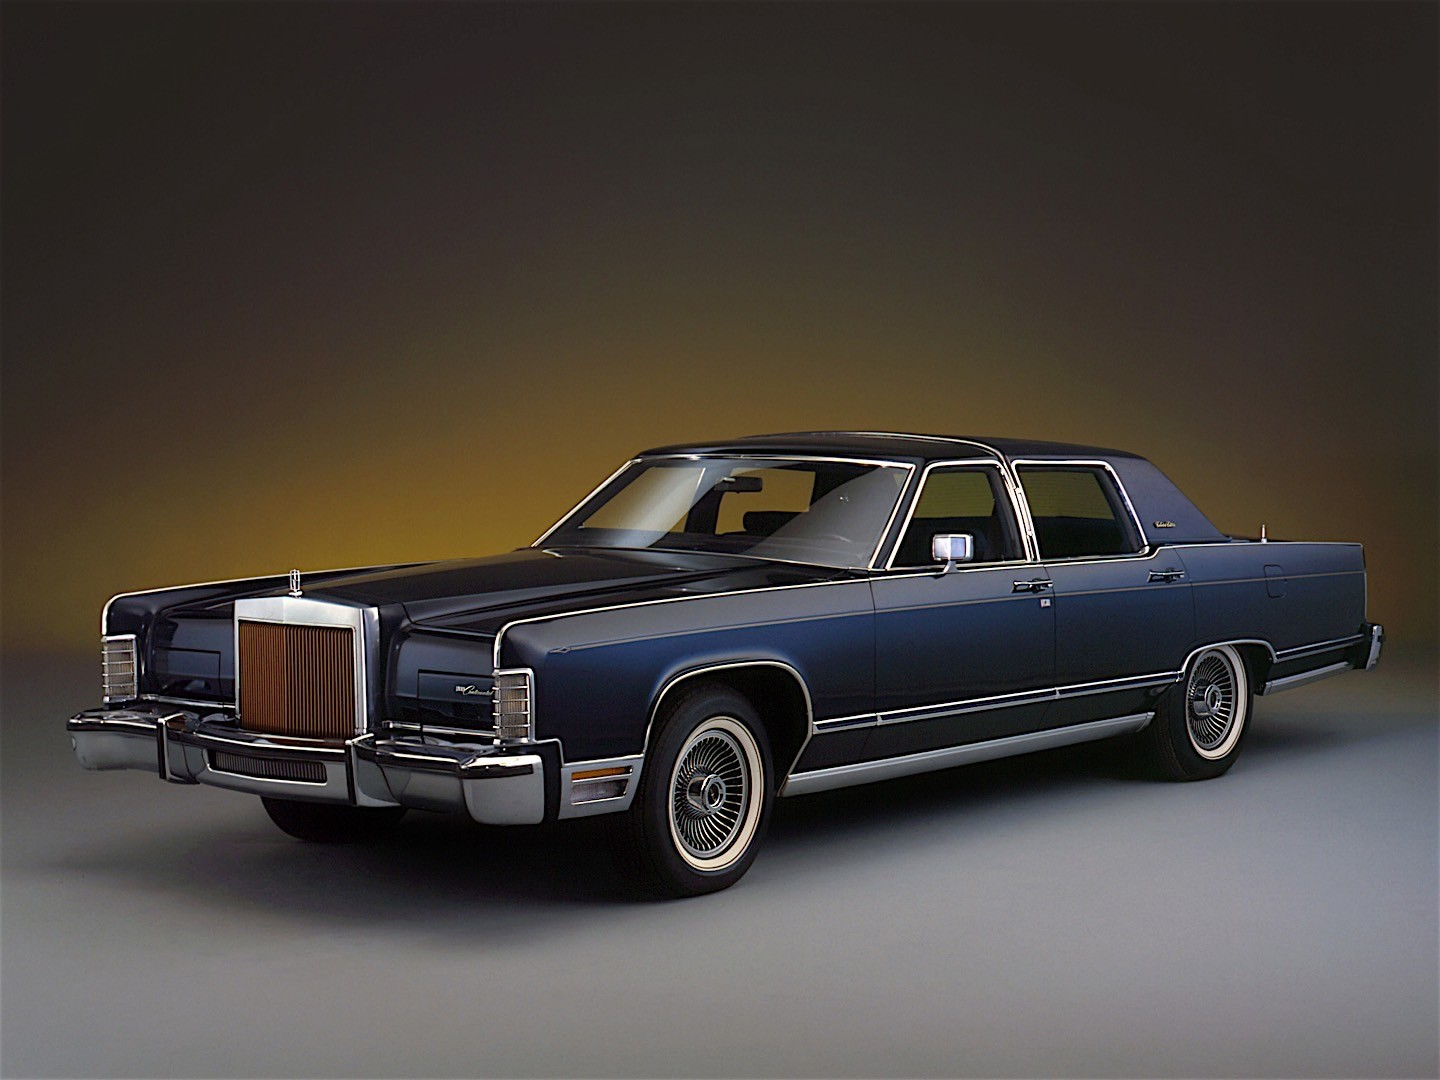 Lincoln Continental Specs 1970 1971 1972 1973 1974 1975 1976 1977 1978 1979